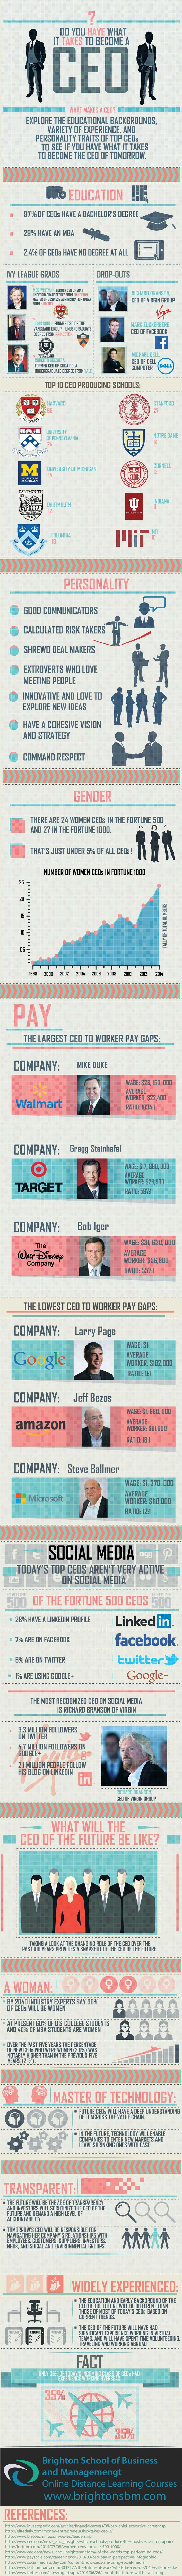 What makes a CEO - infographic